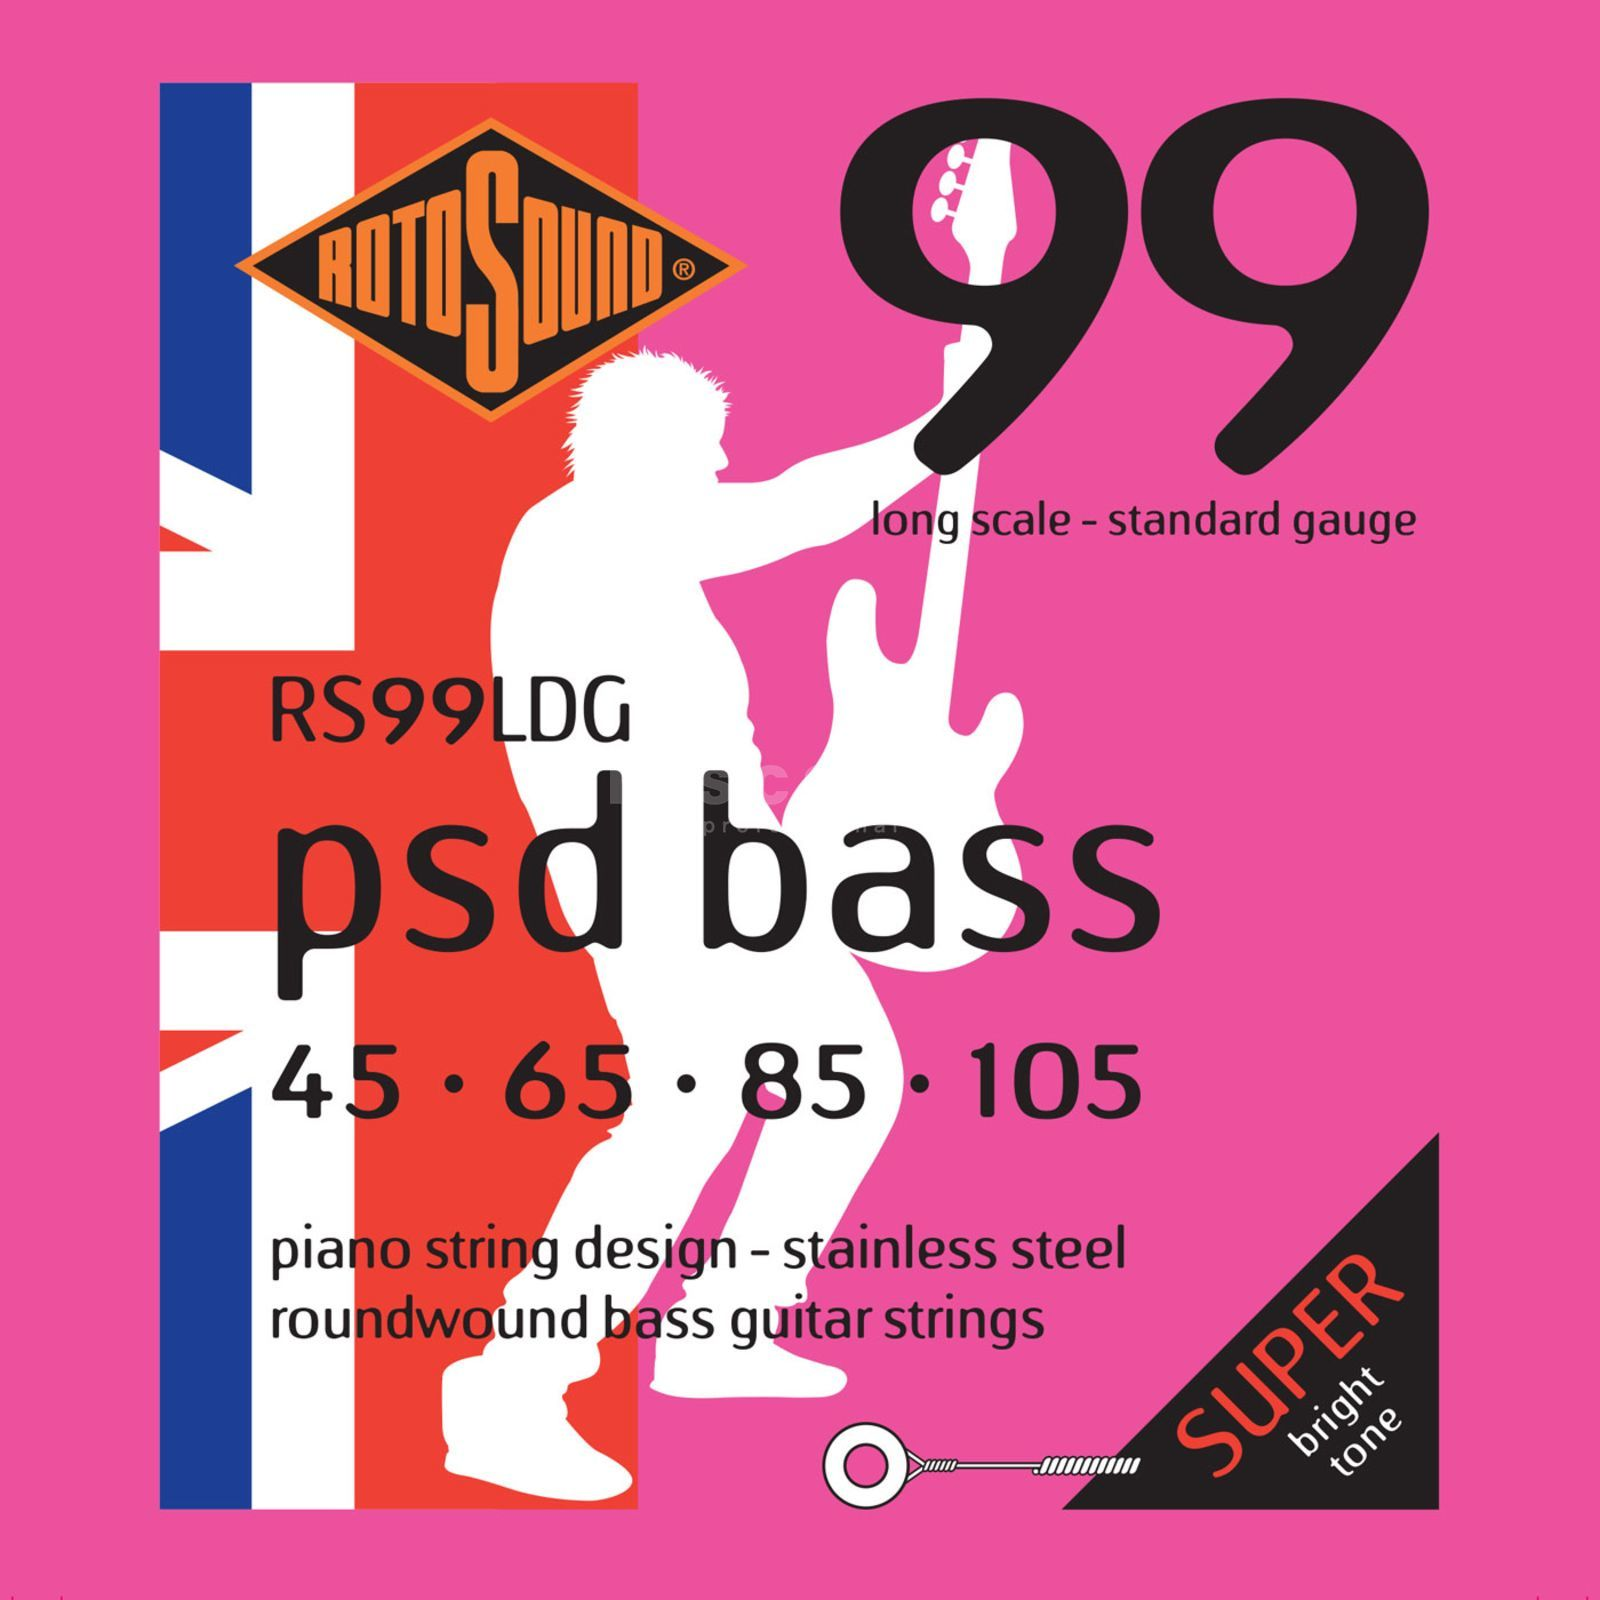 Rotosound Bass Strings RS99LDG 45-105 PSD Bass 99, Stainless Steel Product Image